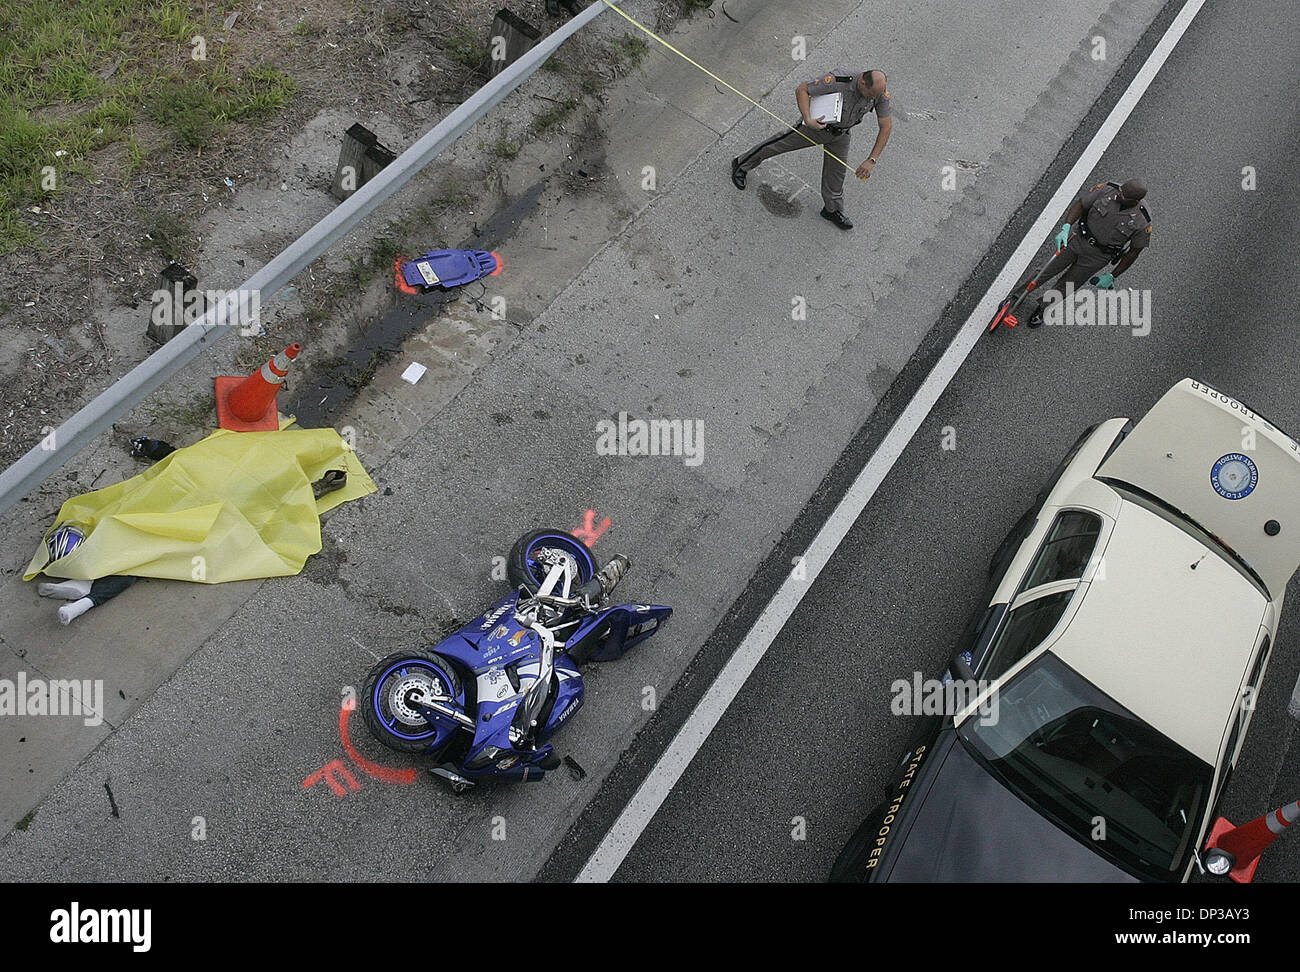 Florida Highway Patrol Traffic >> Jun 26, 2006; Palm Beach Gardens, FL, USA; A fatal motorcycle Stock Photo: 65227991 - Alamy